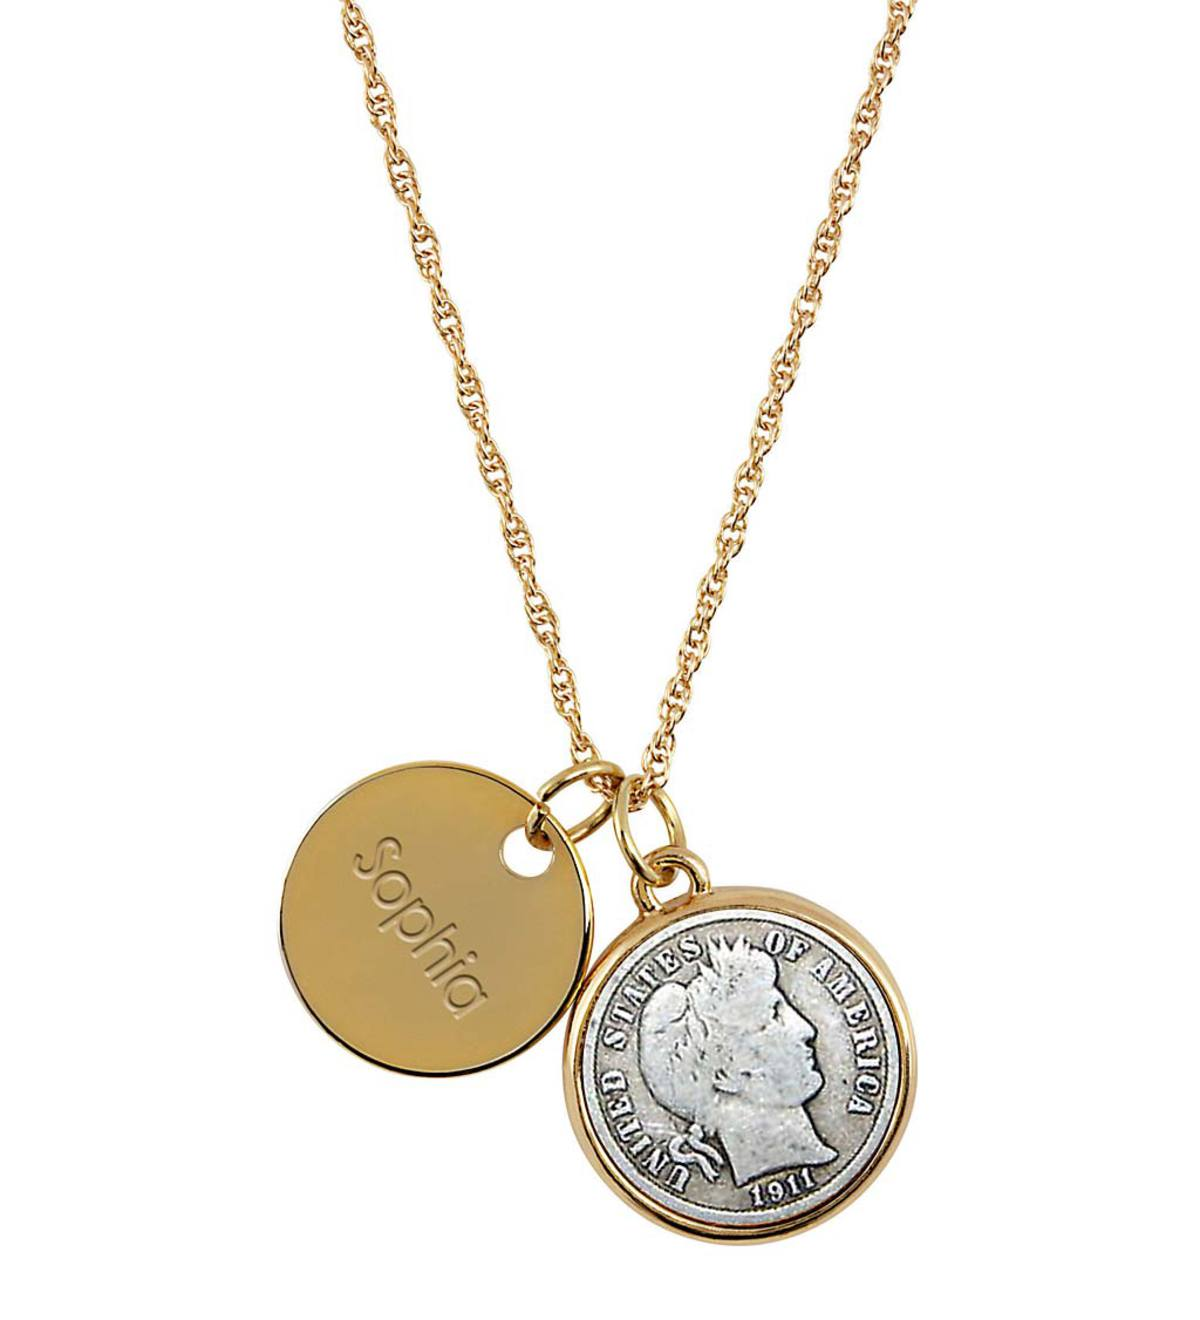 Personalized Pendant Necklace with Silver Dime